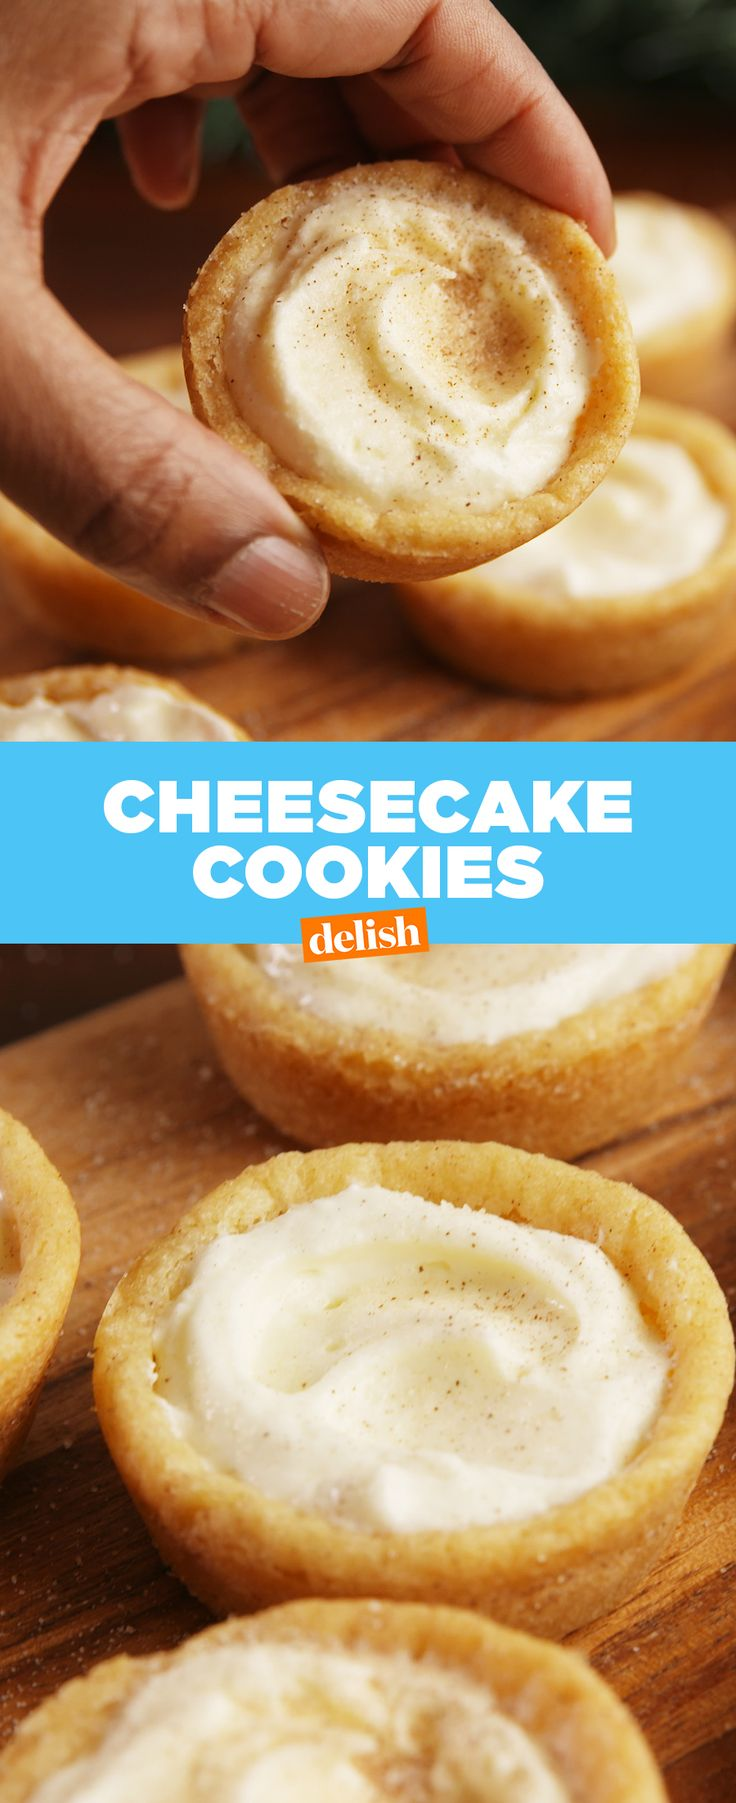 Cheesecake + Cookies = the ultimate dessert mashup. Get the recipe at Delish.com